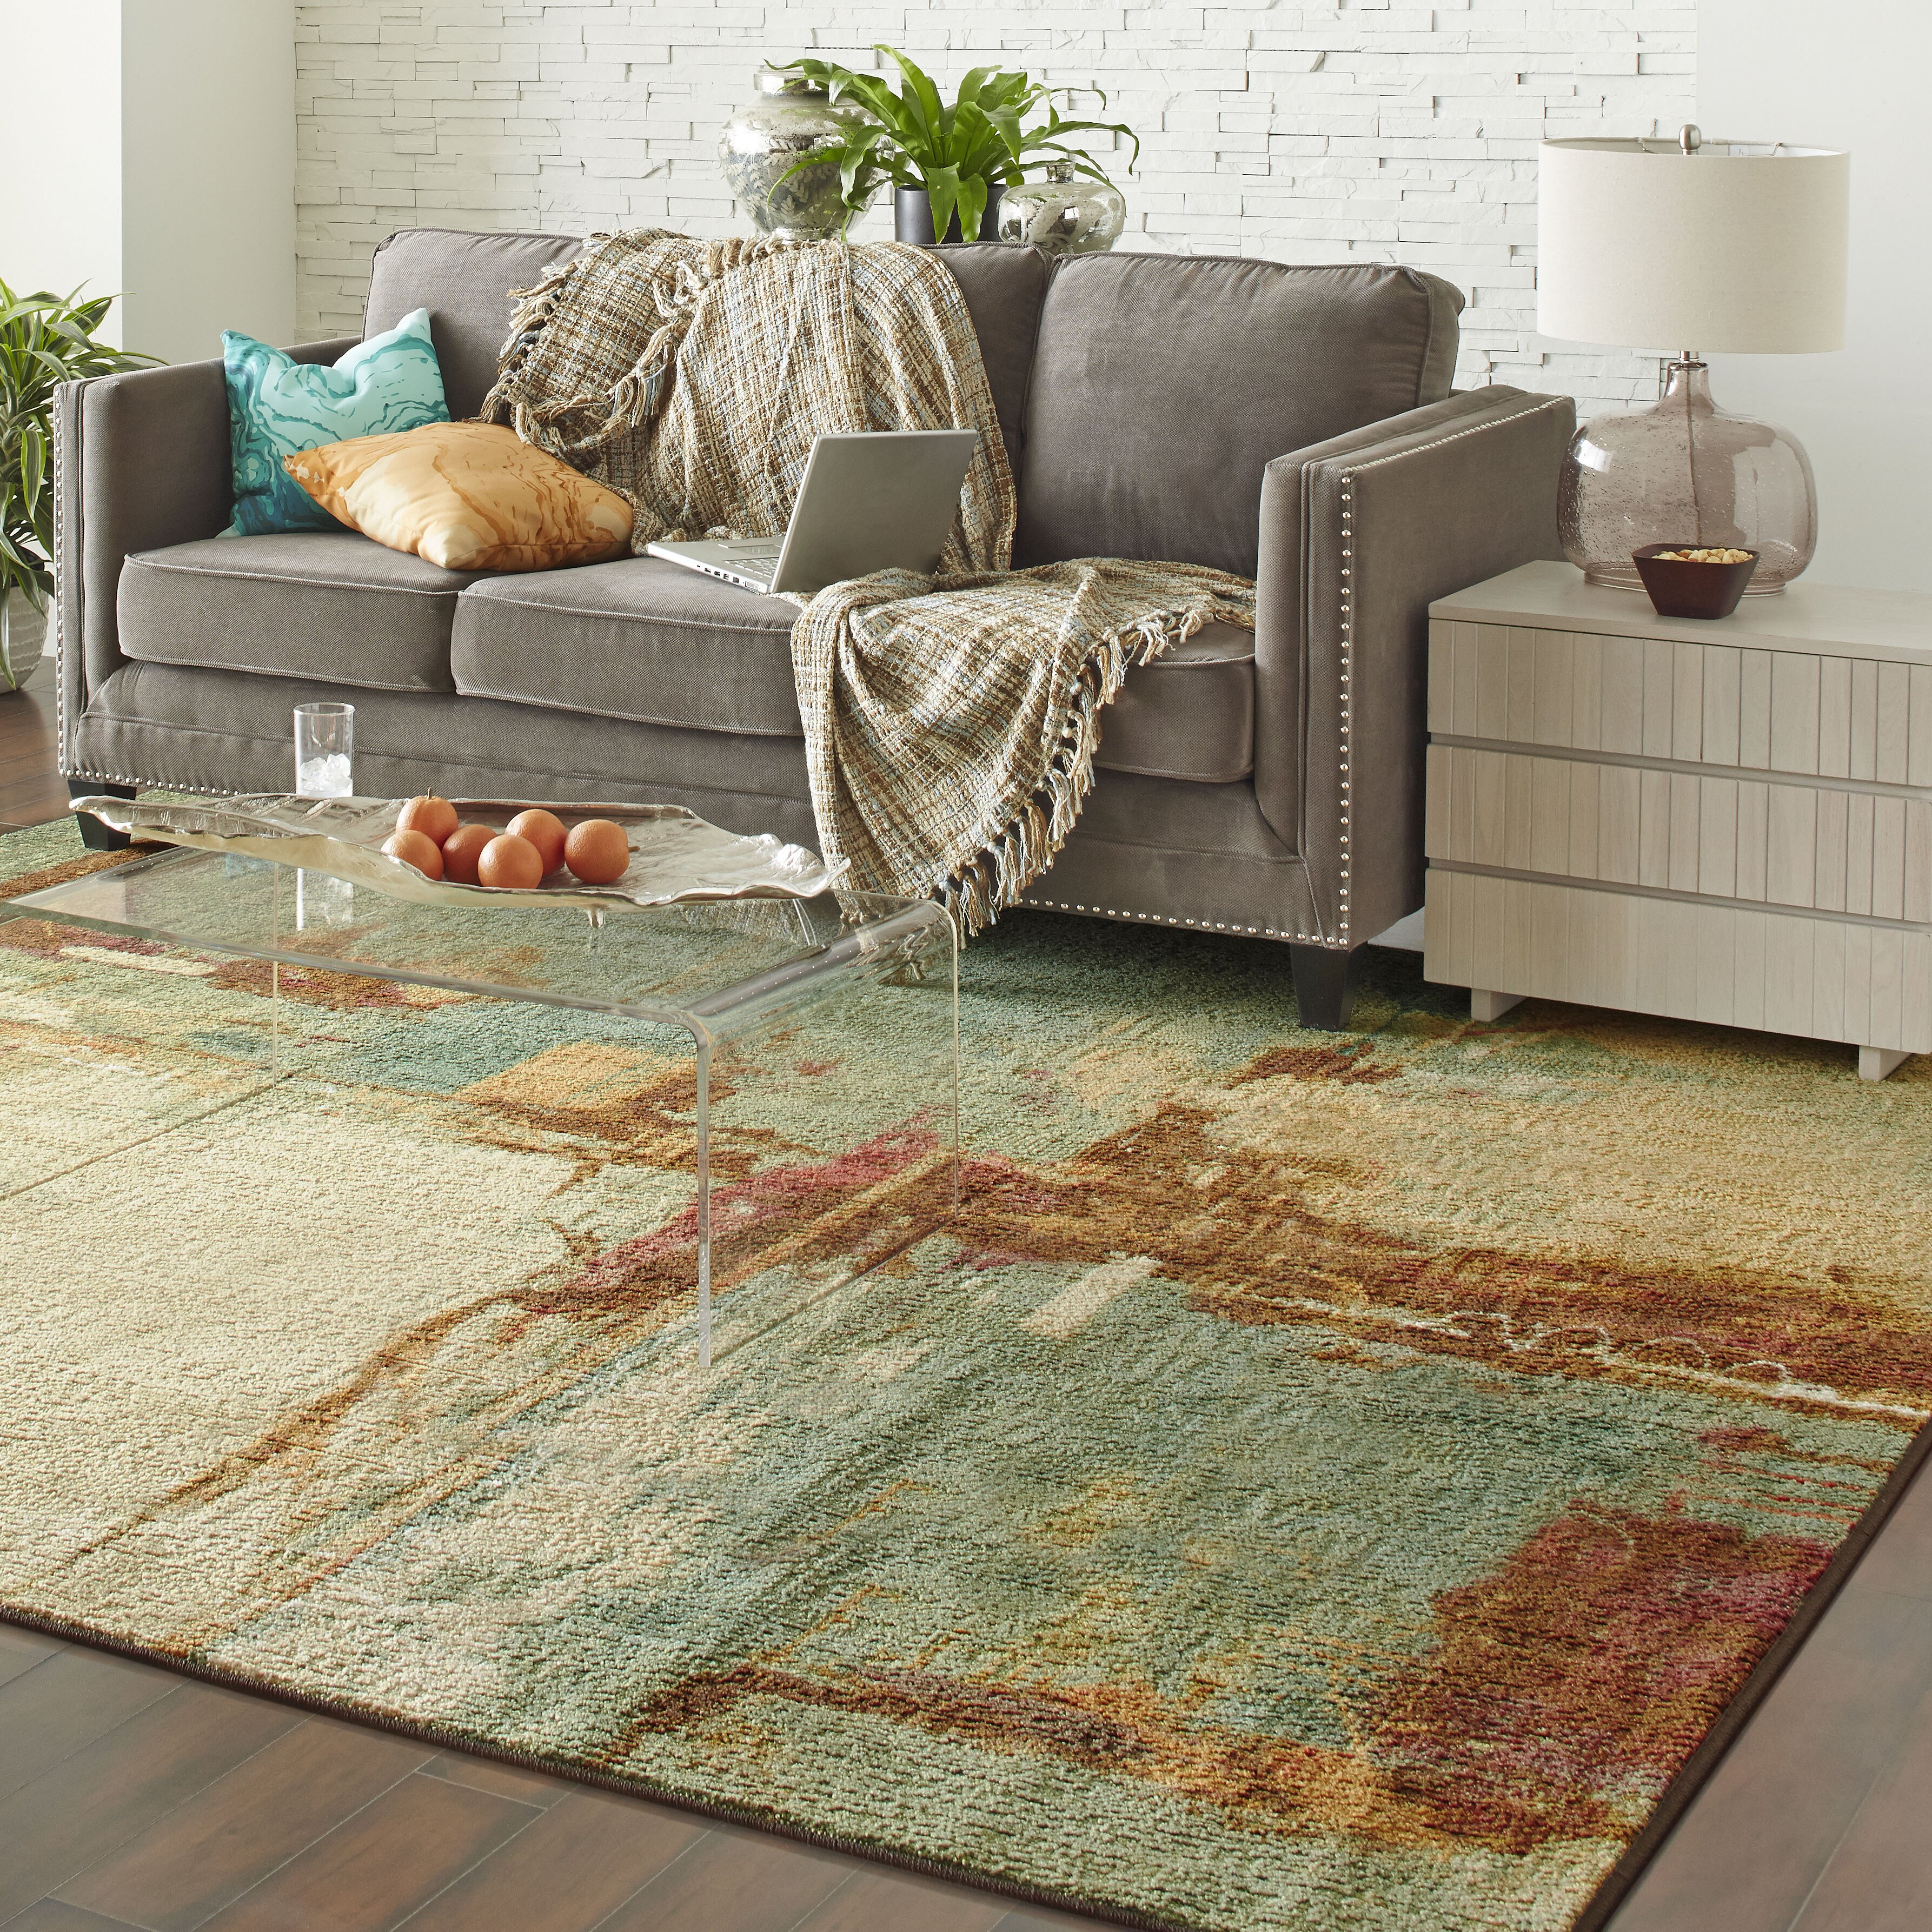 Langley street florencia aqua area rug reviews wayfair for 10x10 living room rugs